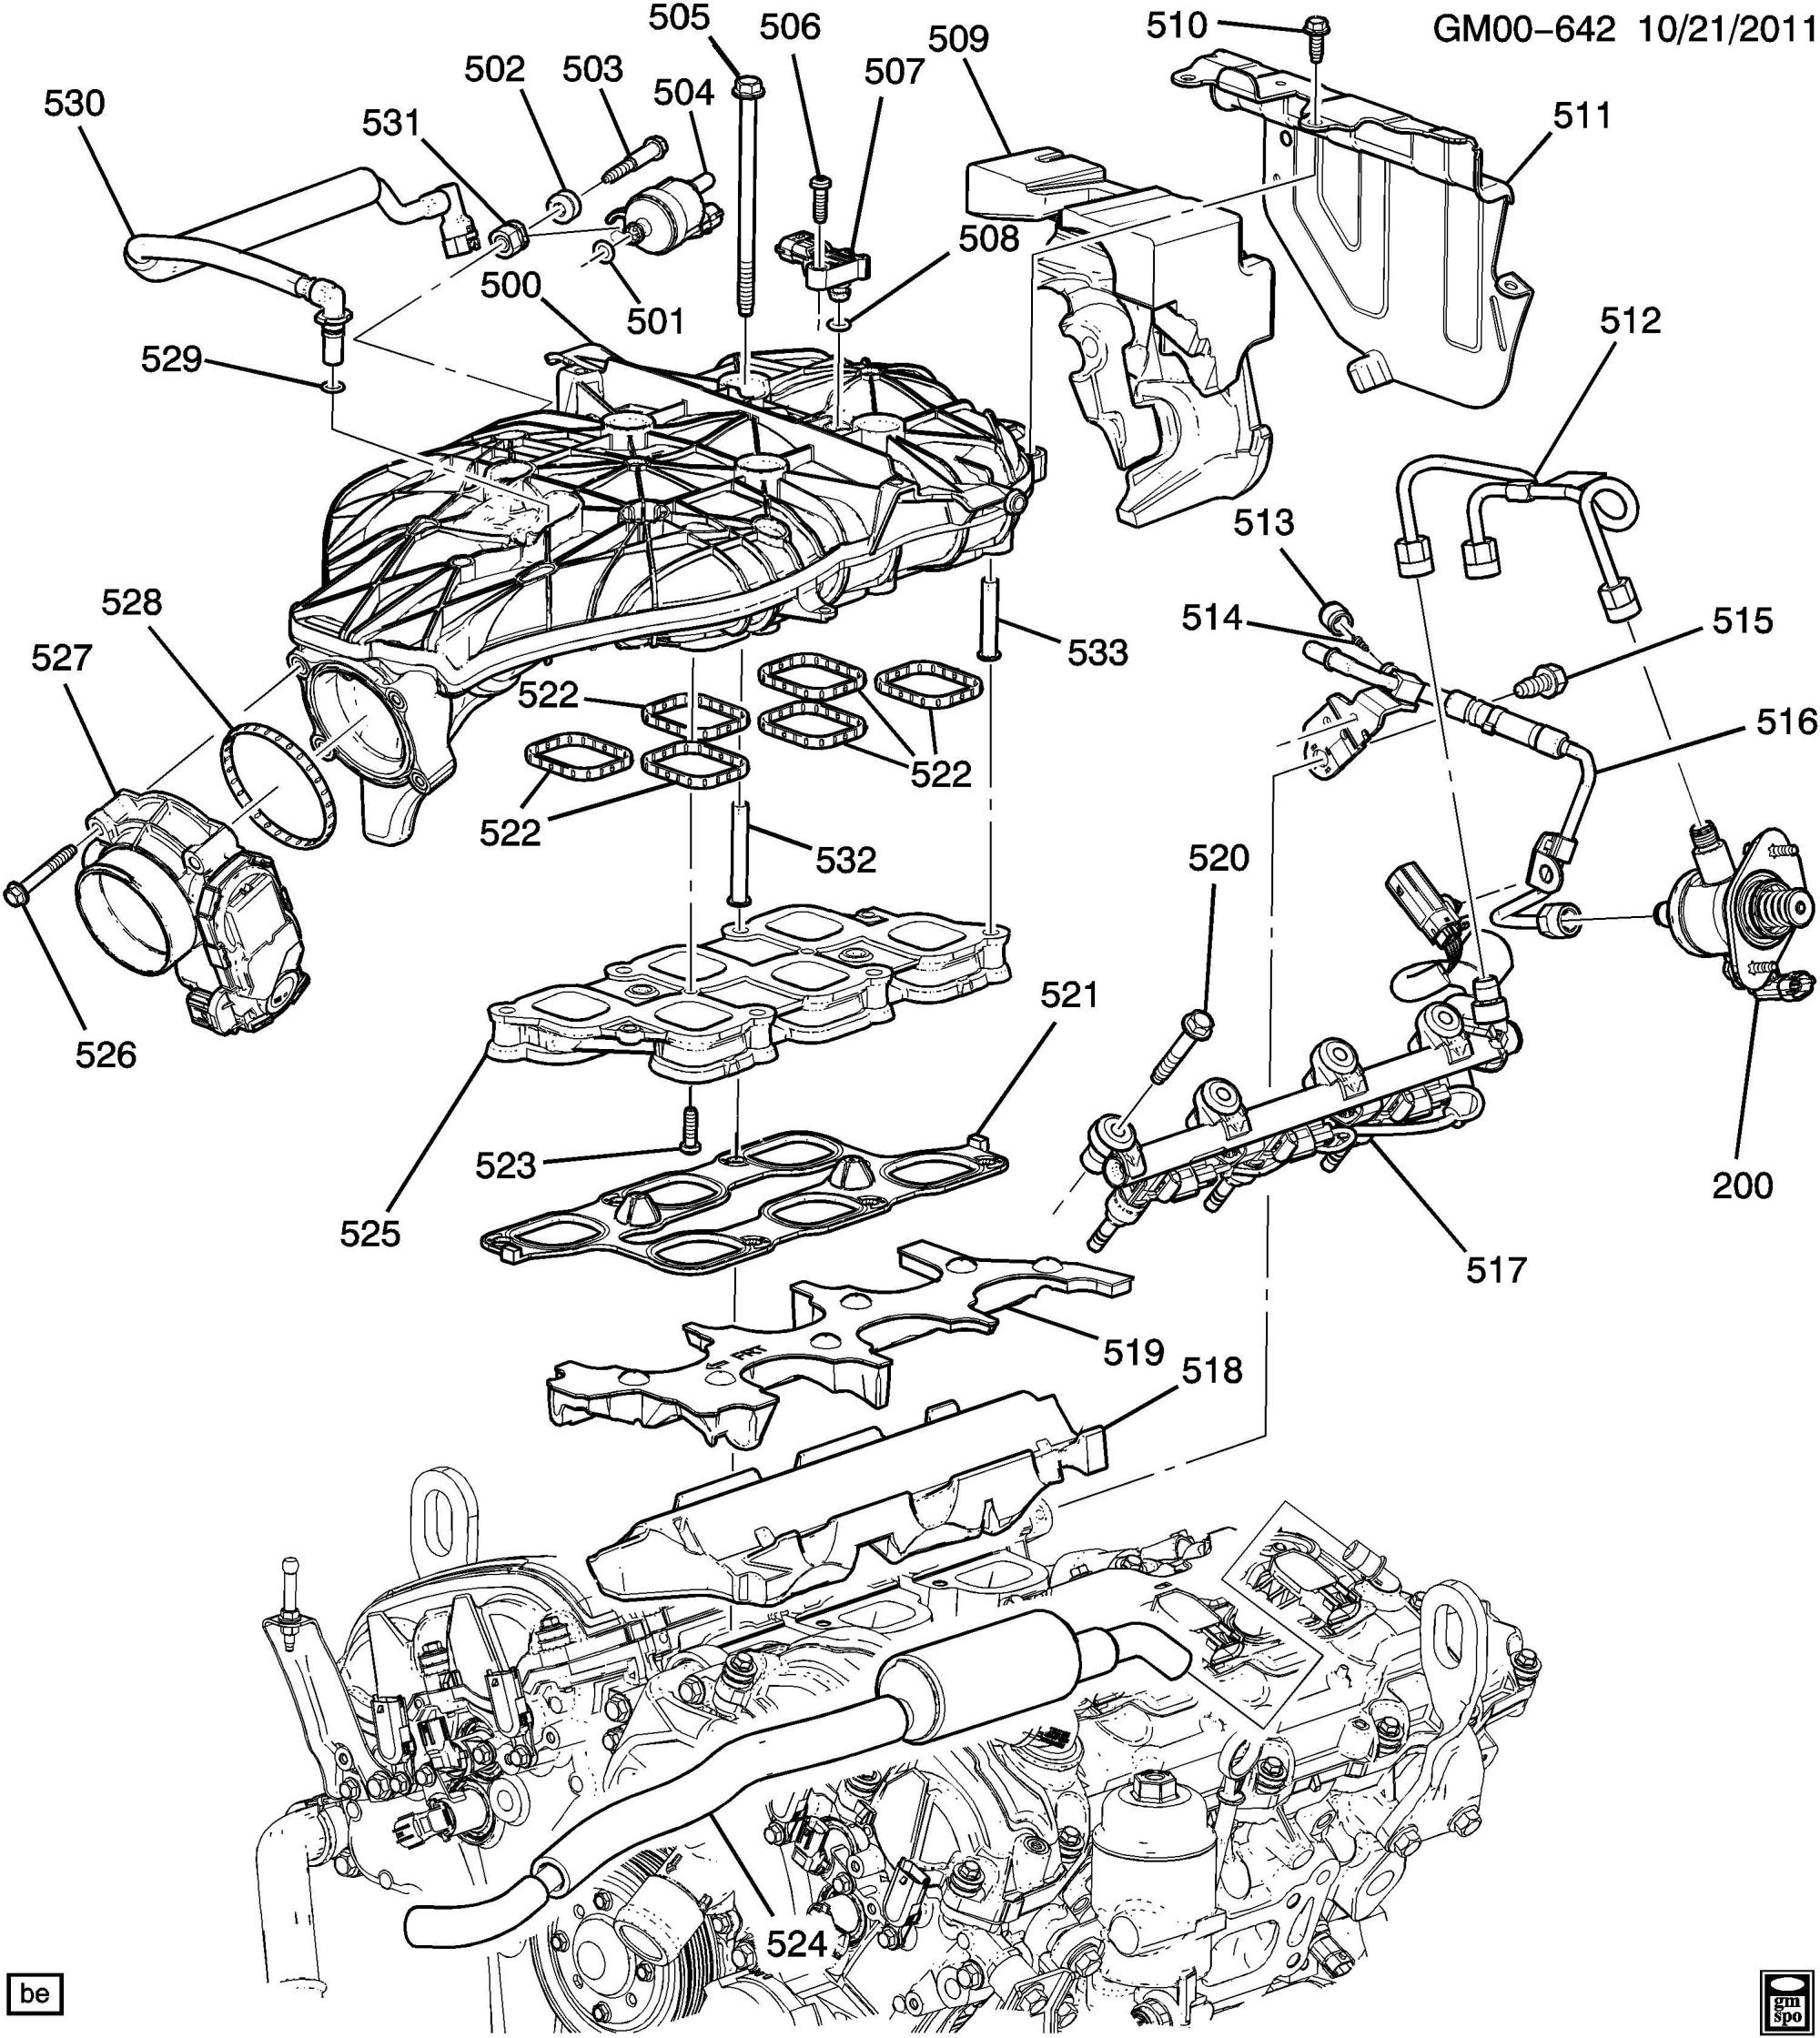 hight resolution of 2010 camaro v6 engine diagram wiring diagram list 2010 camaro engine cooling system diagram